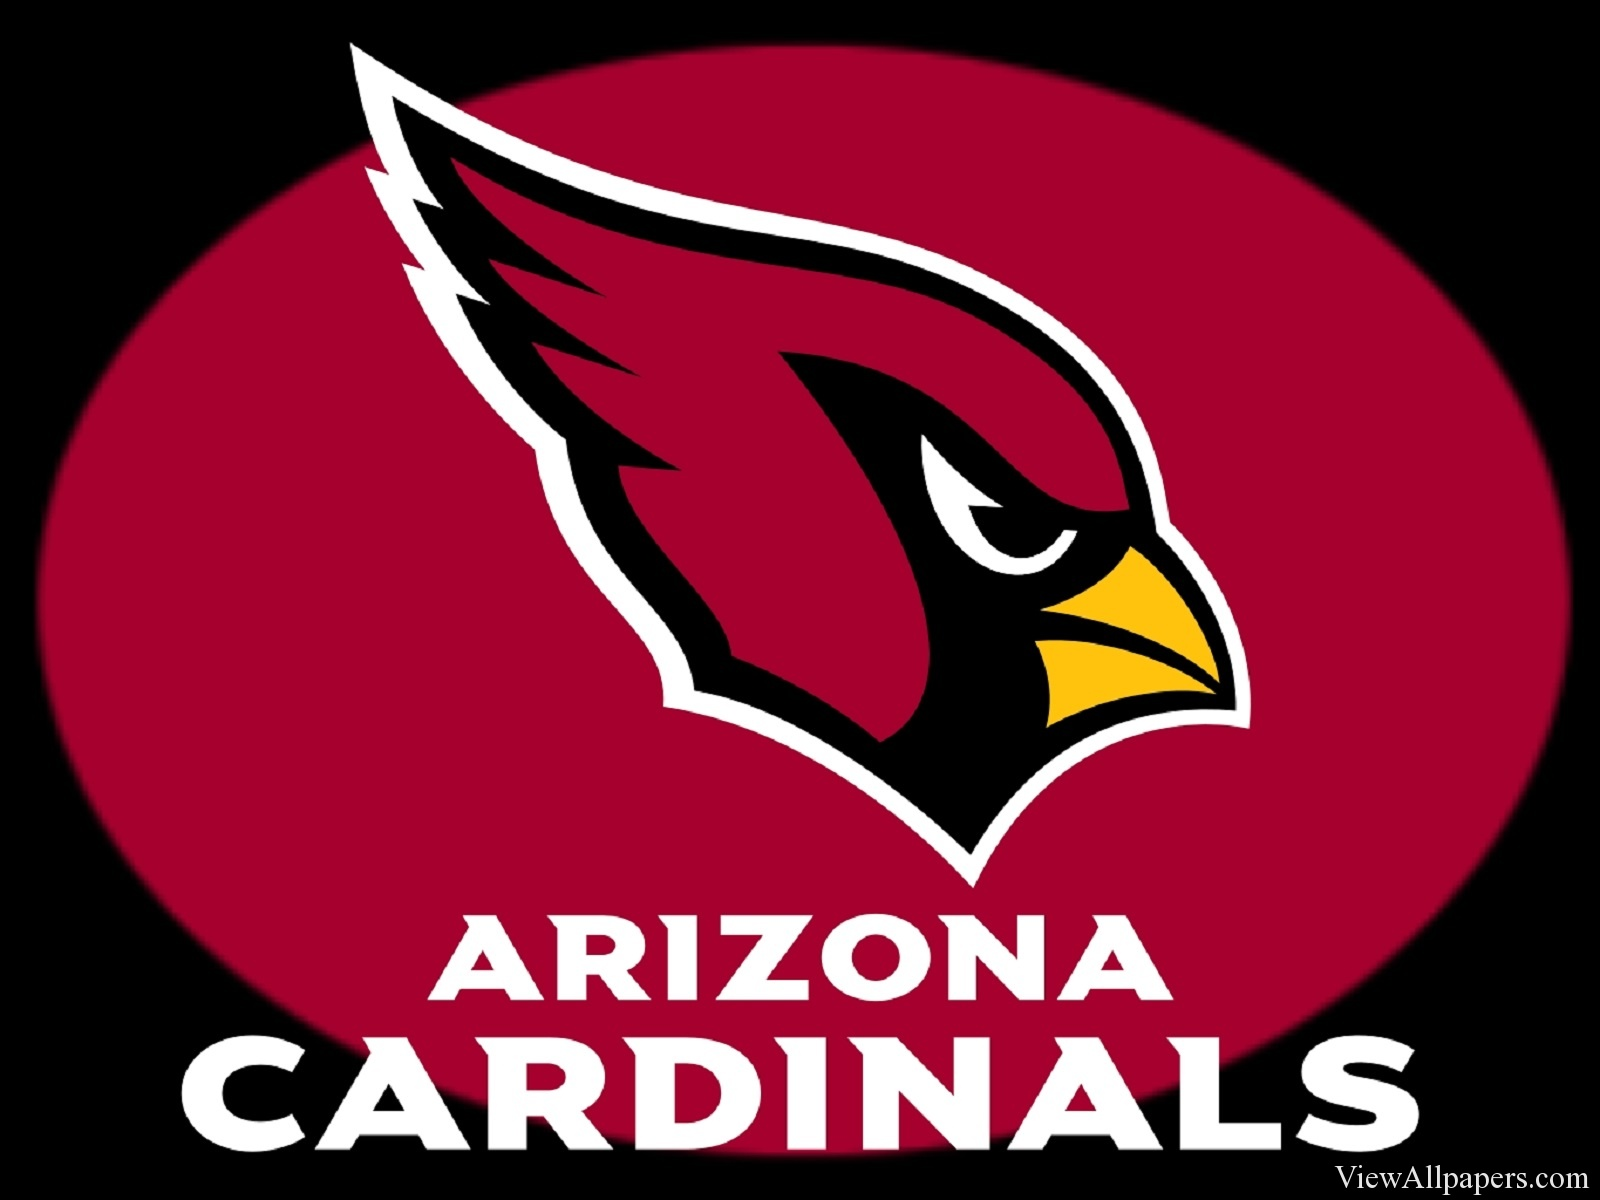 Cardinals wallpaper wallpapersafari - Arizona cardinals screensaver free ...